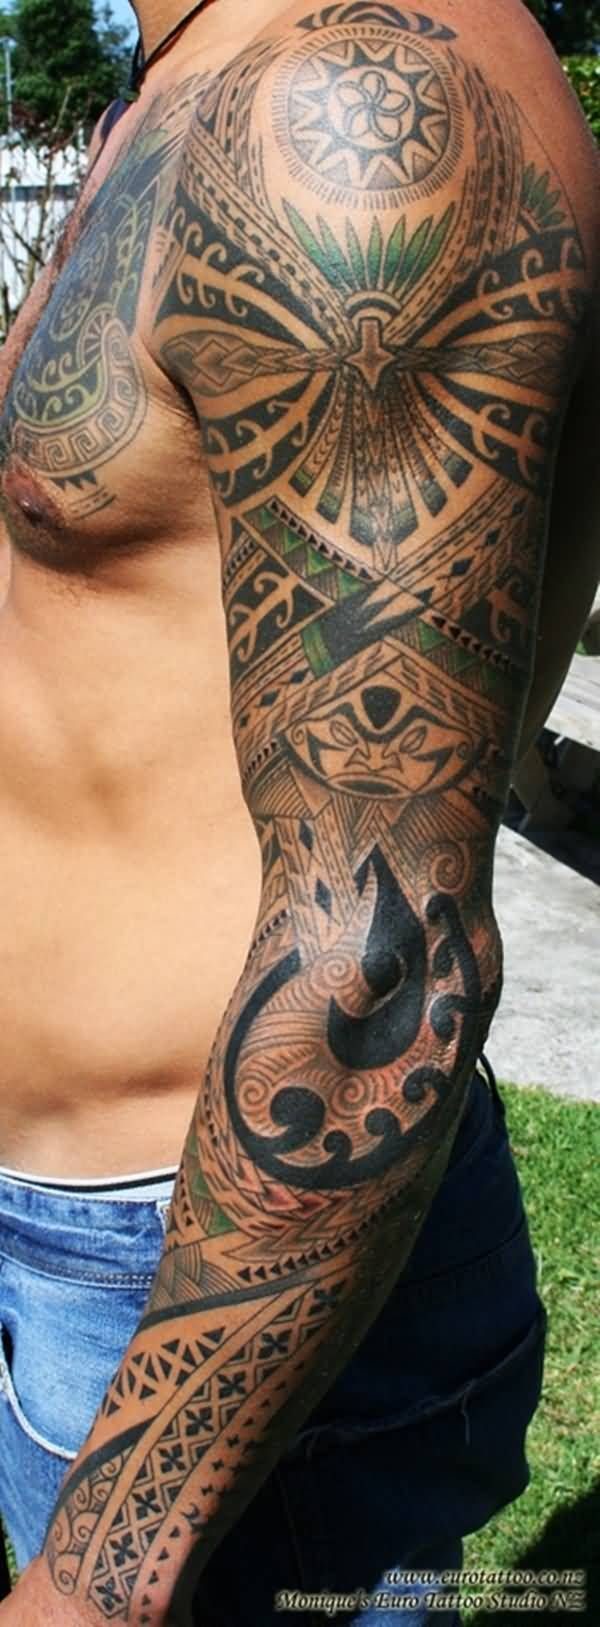 Best 25 African Tattoo Ideas On Pinterest African Ideas And Designs